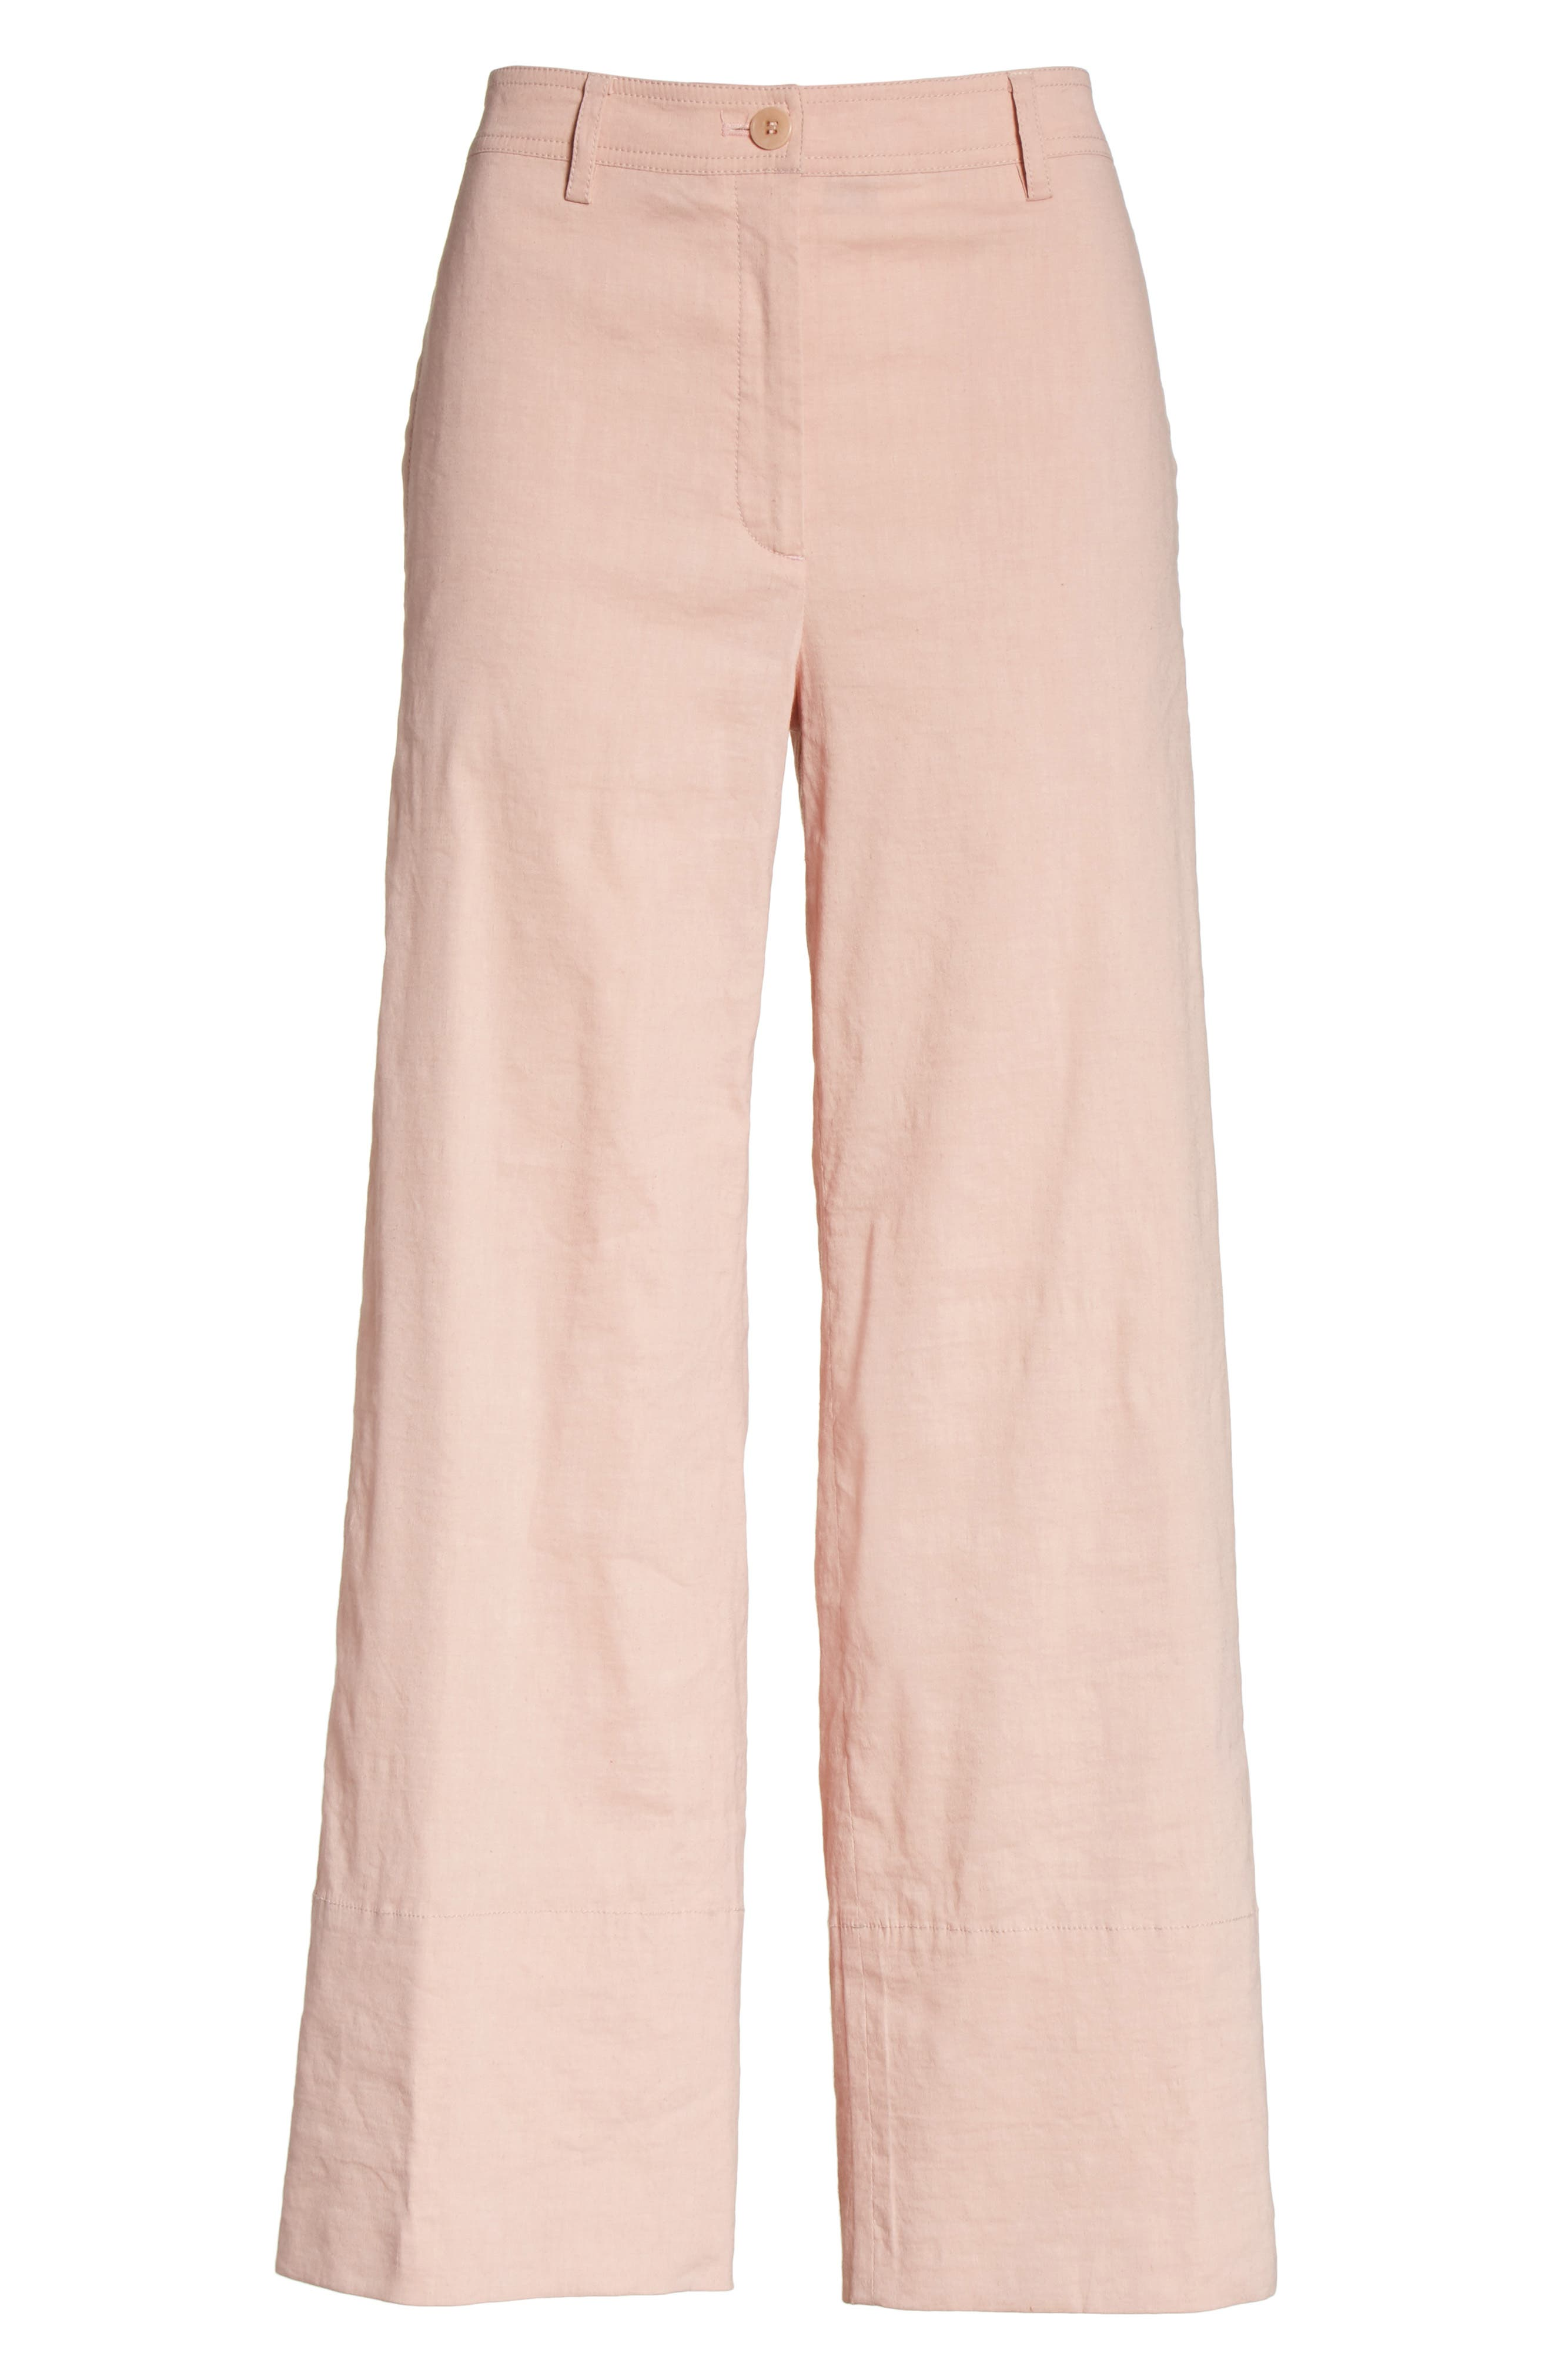 Fluid Wide Leg Crop Pants,                             Alternate thumbnail 6, color,                             658